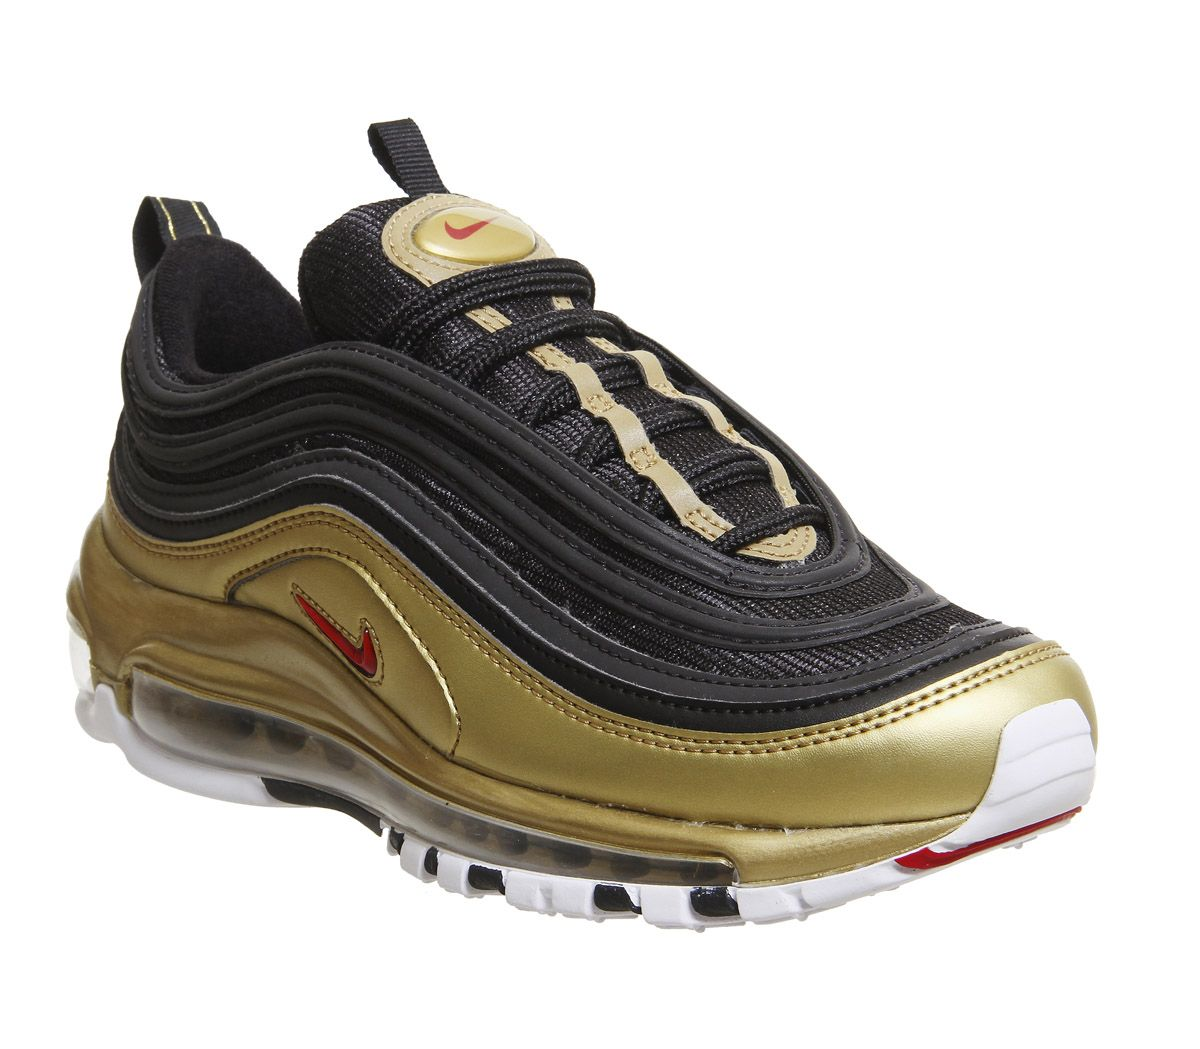 6b61948ef5 Nike Air Max 97 Trainers Black Red Gold - Hers trainers